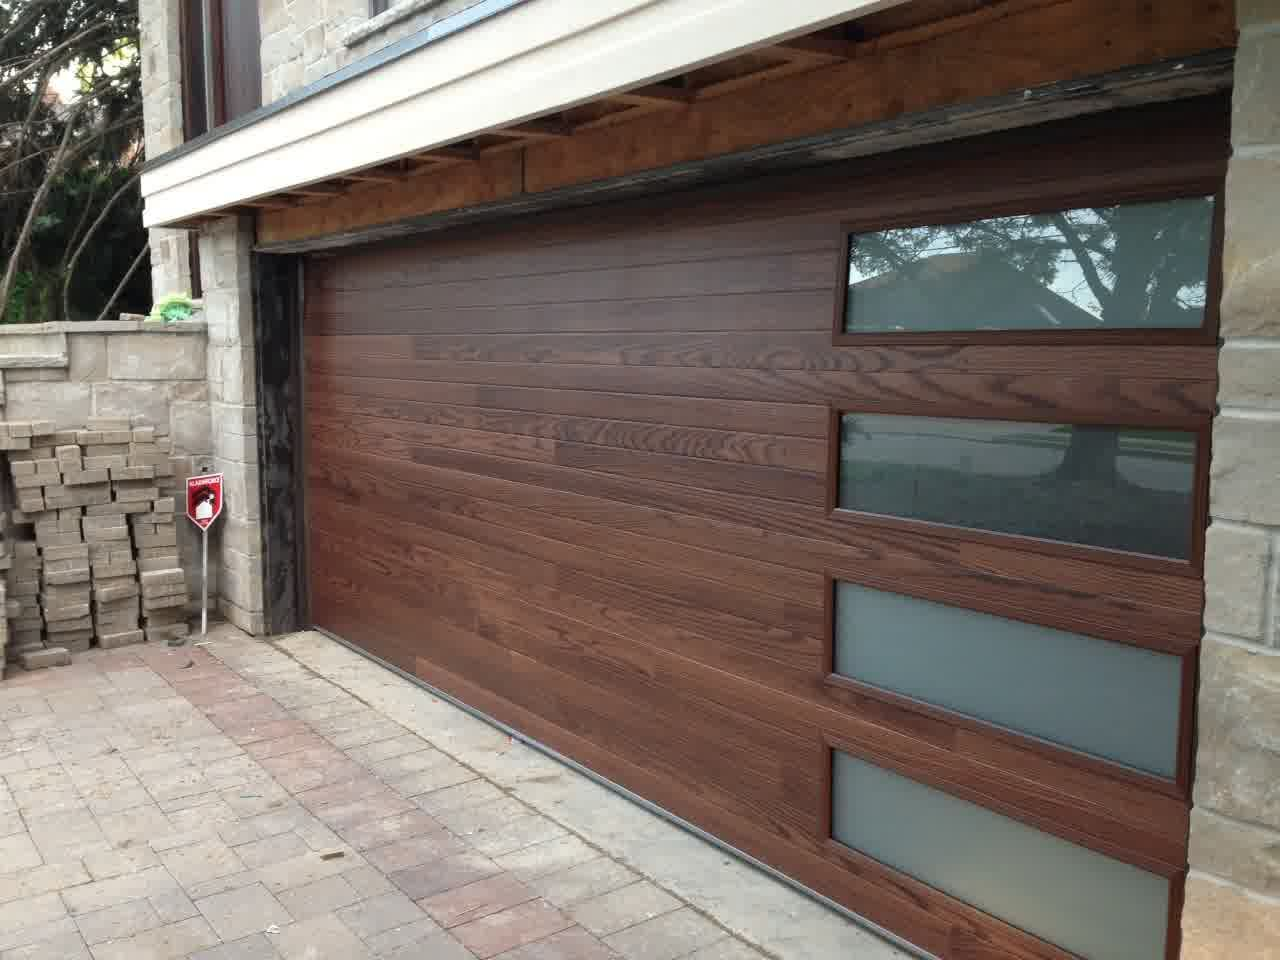 Mid century modern garage doors with windows - Nice Mid Century Modern Garage Doors With Wood And Glass Windows Plus Natural Brick Wall And